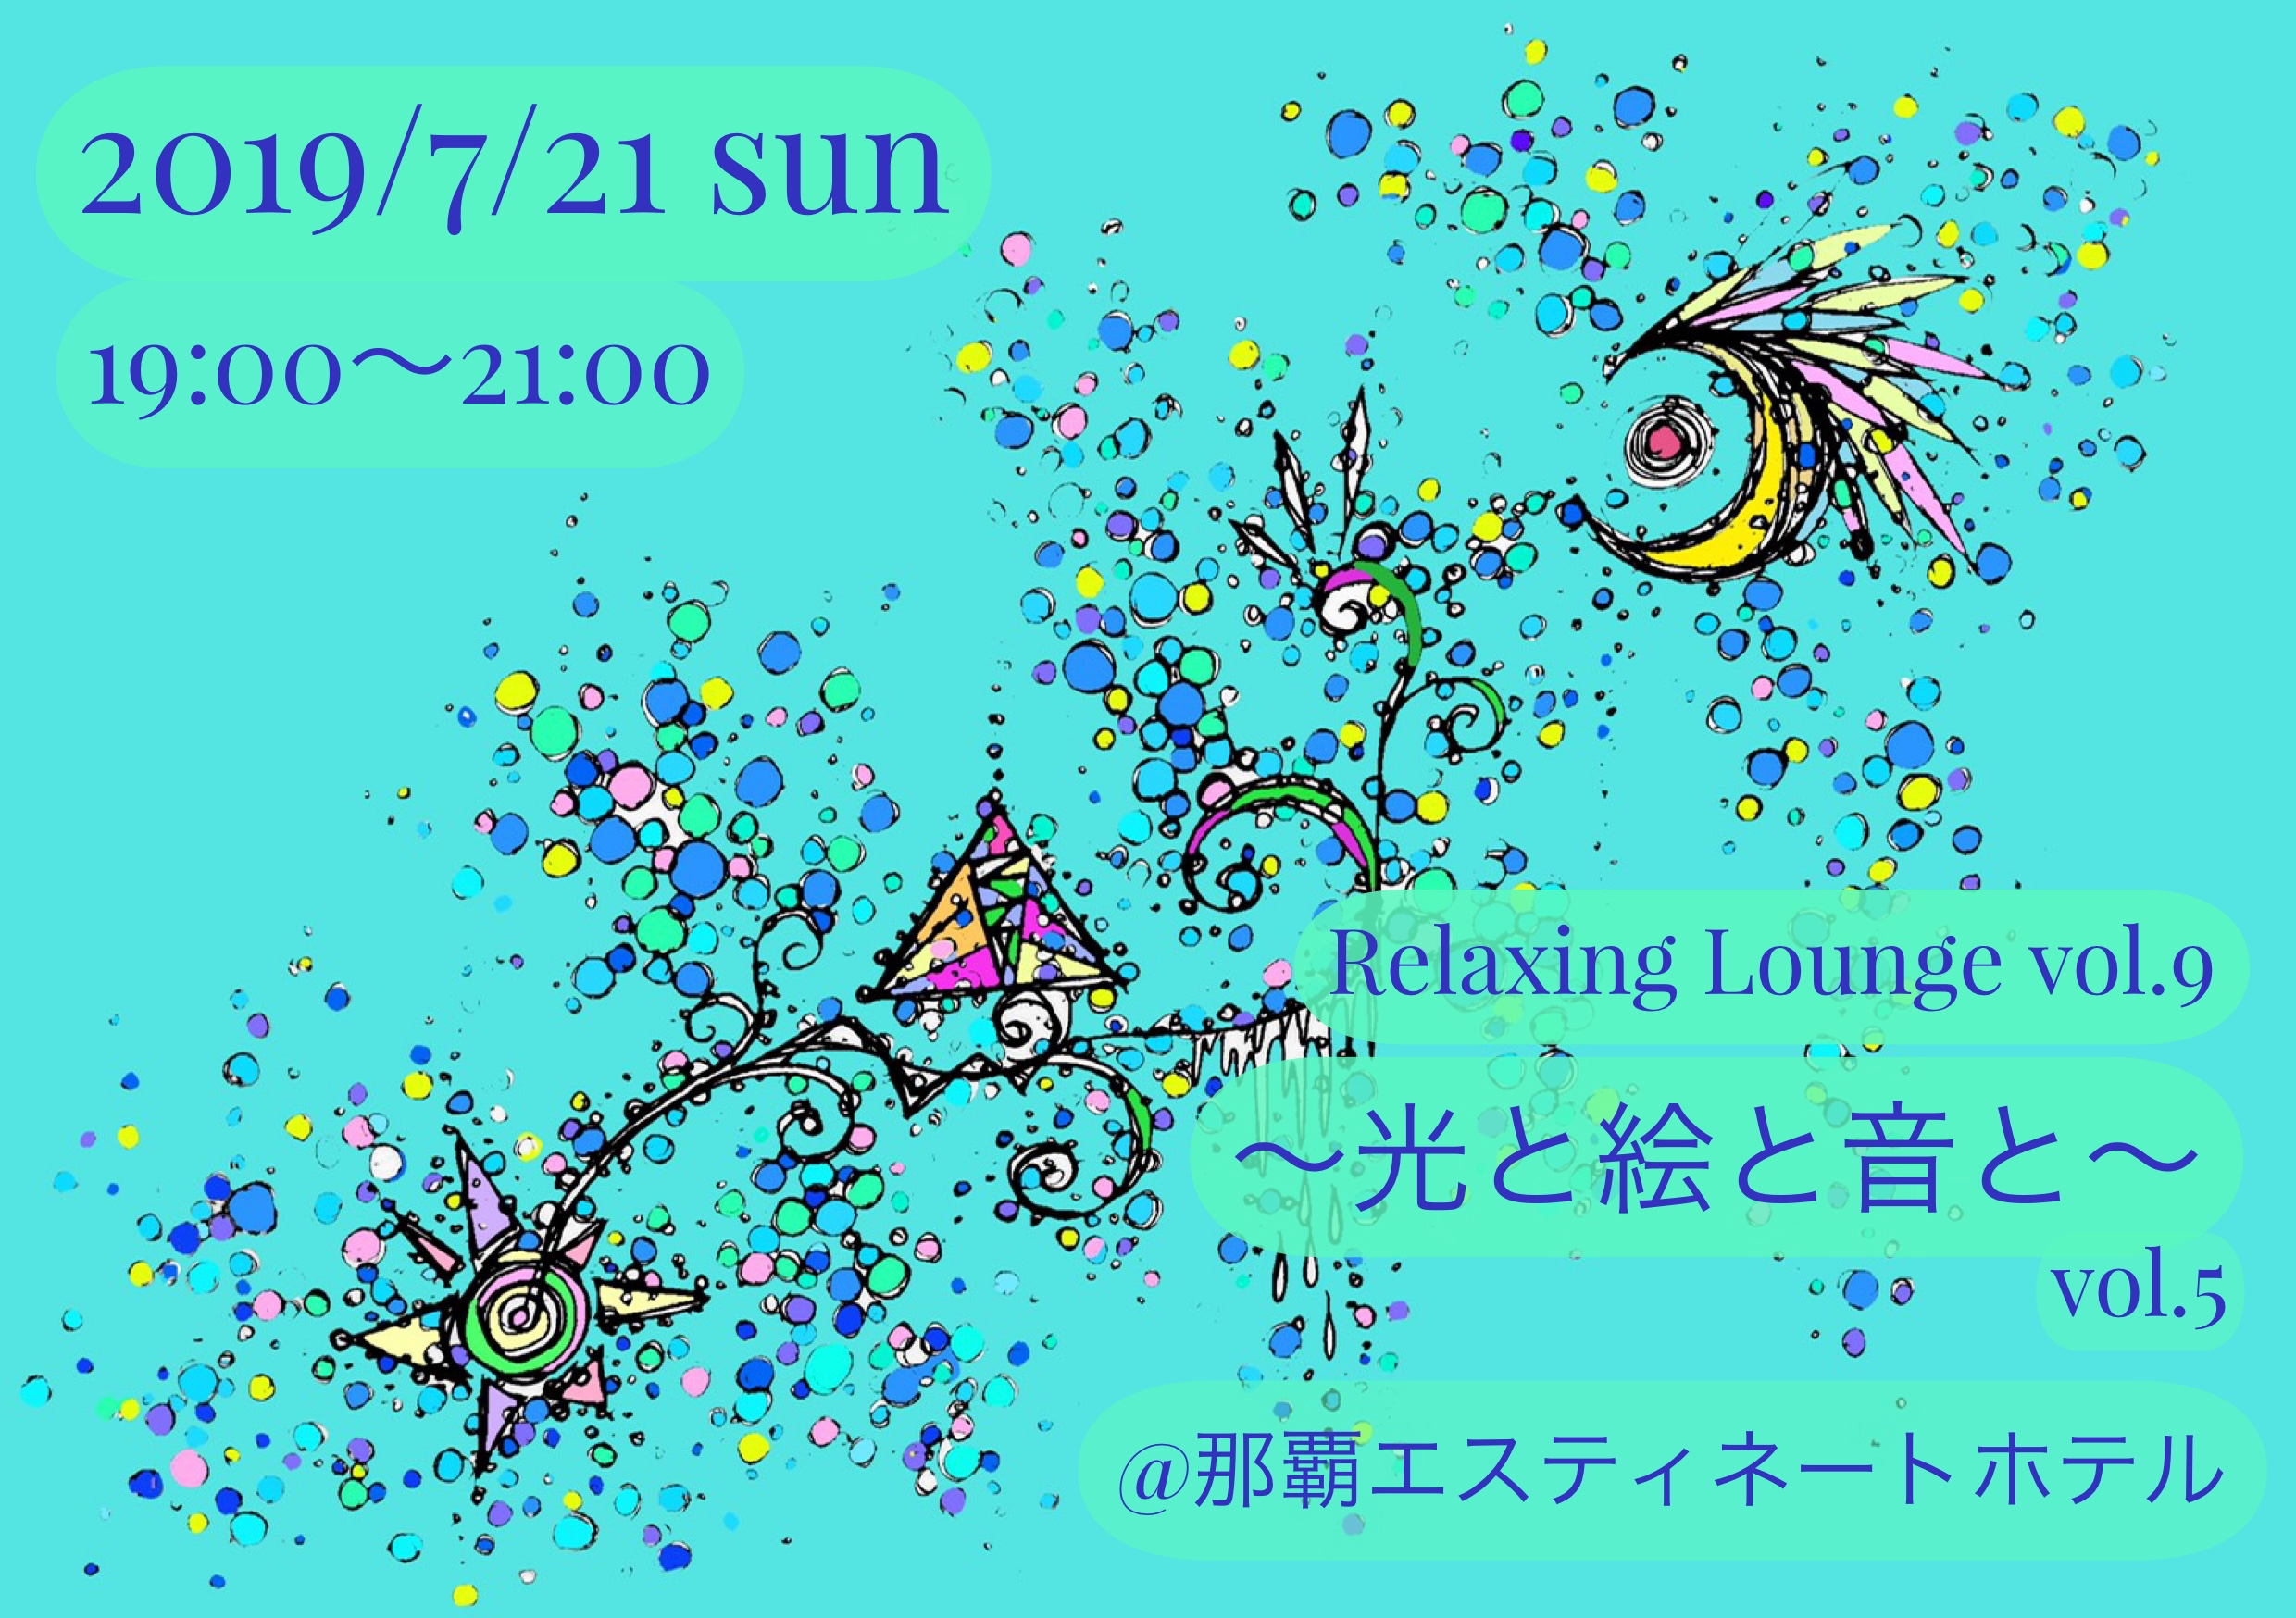 2019/7/21sun  Relaxing Lounge vol.9